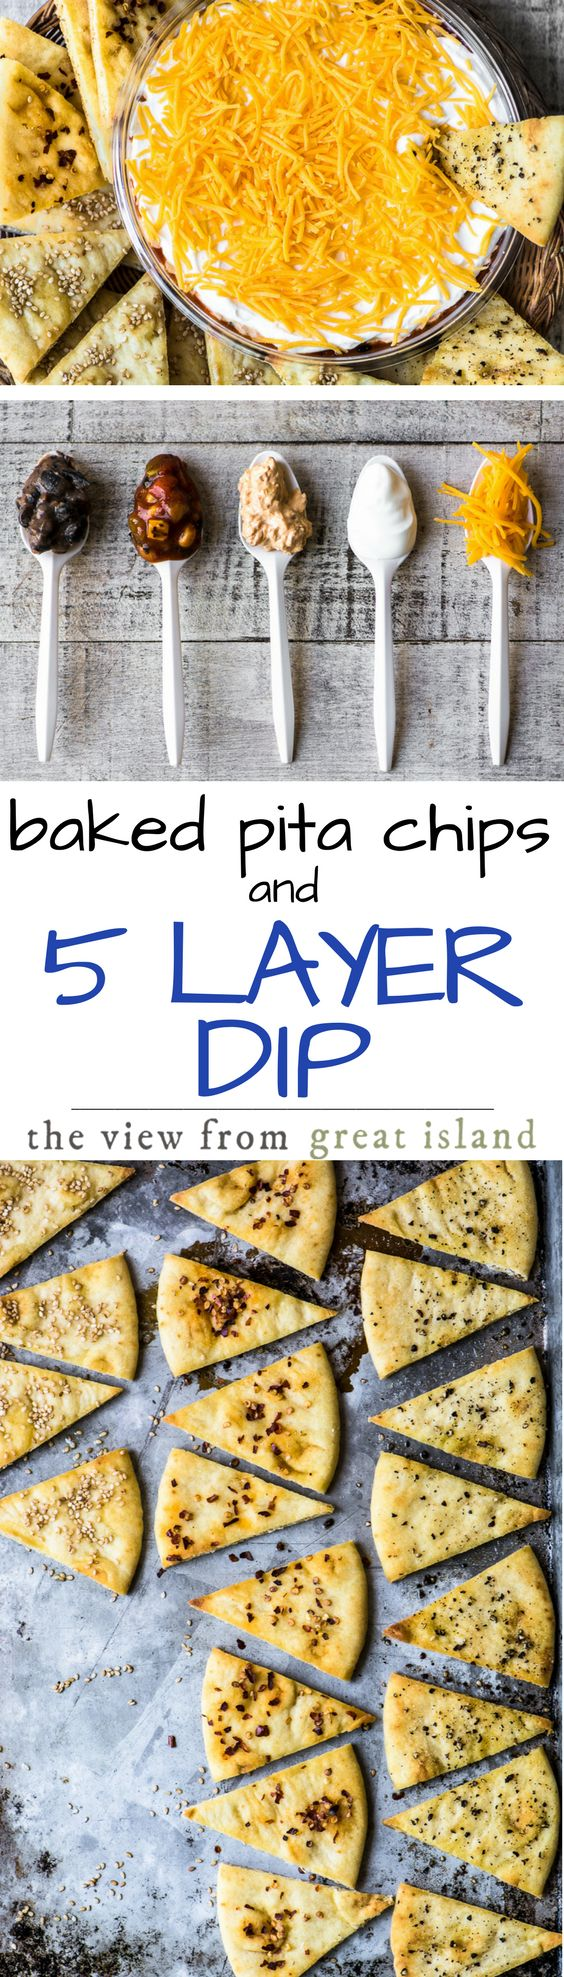 Baked Pita Chips with Black Bean, Corn, & Chorizo 5 Layer Dip ~ A great dip deserves a great chip, and today I'm baking up my homemade pita chips in 5 flavors in honor of Rojo's newest layered dip ~ let's dig in! | appetizers | Layered Dip | Mexican |